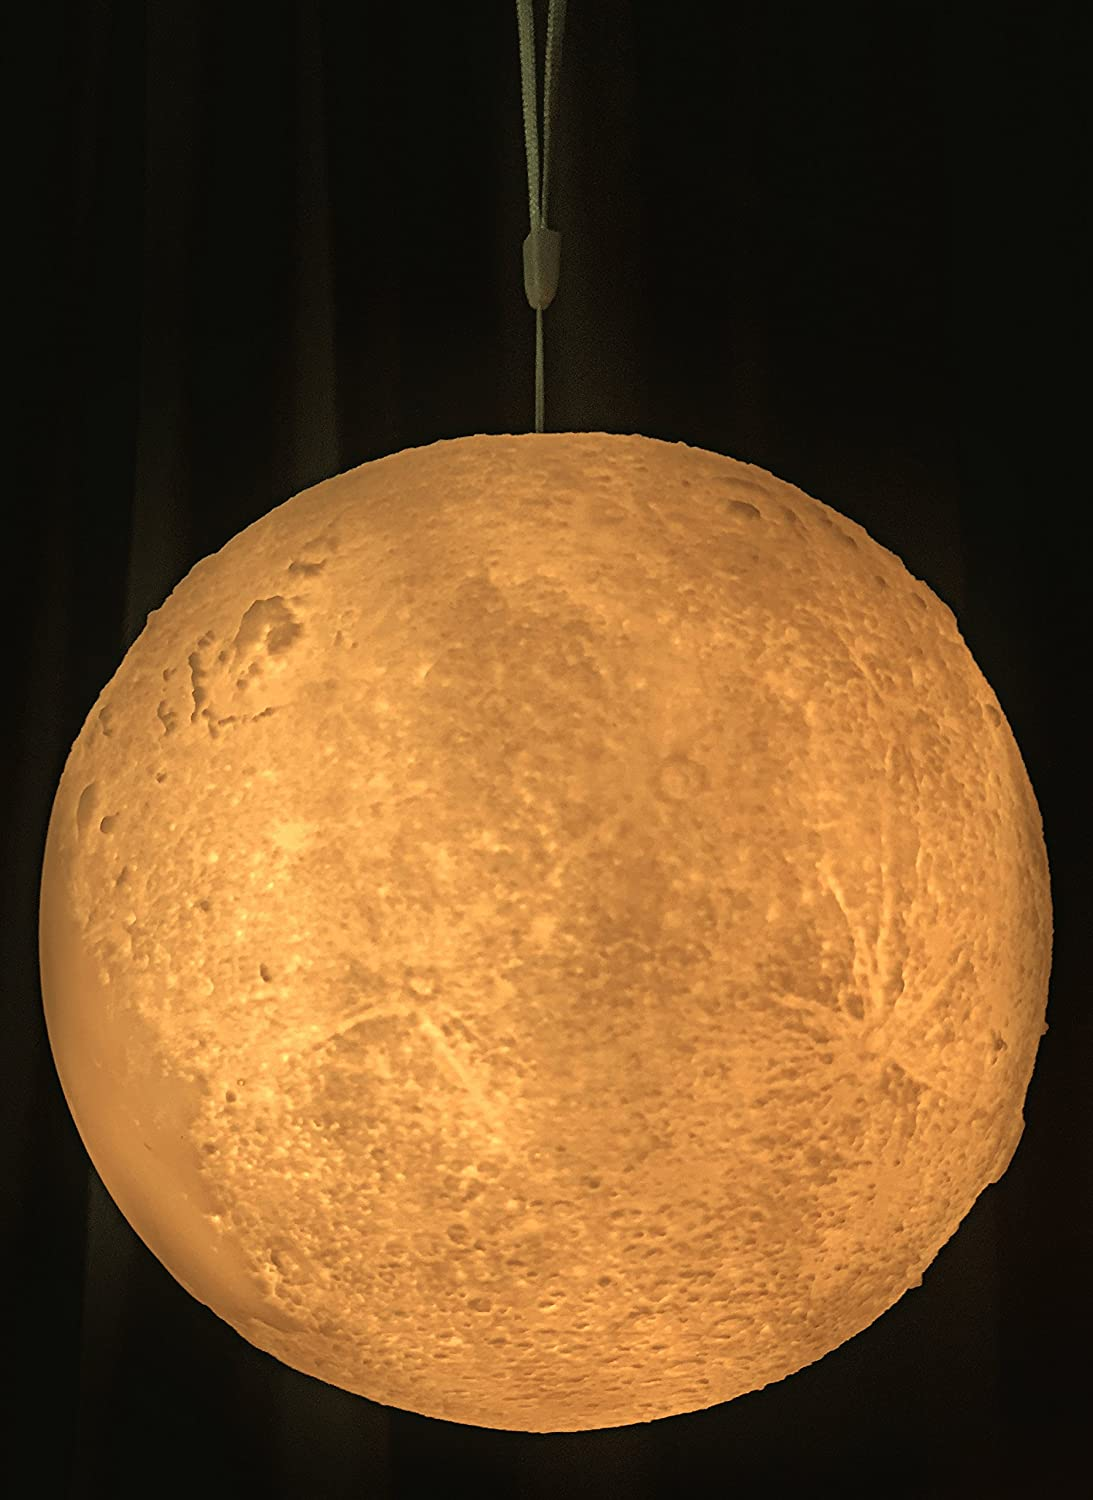 Amazon.com : Moon Lamp | Night Light Fixture Gift for Kids, Baby ... for Moon Lamp Hanging  45ifm